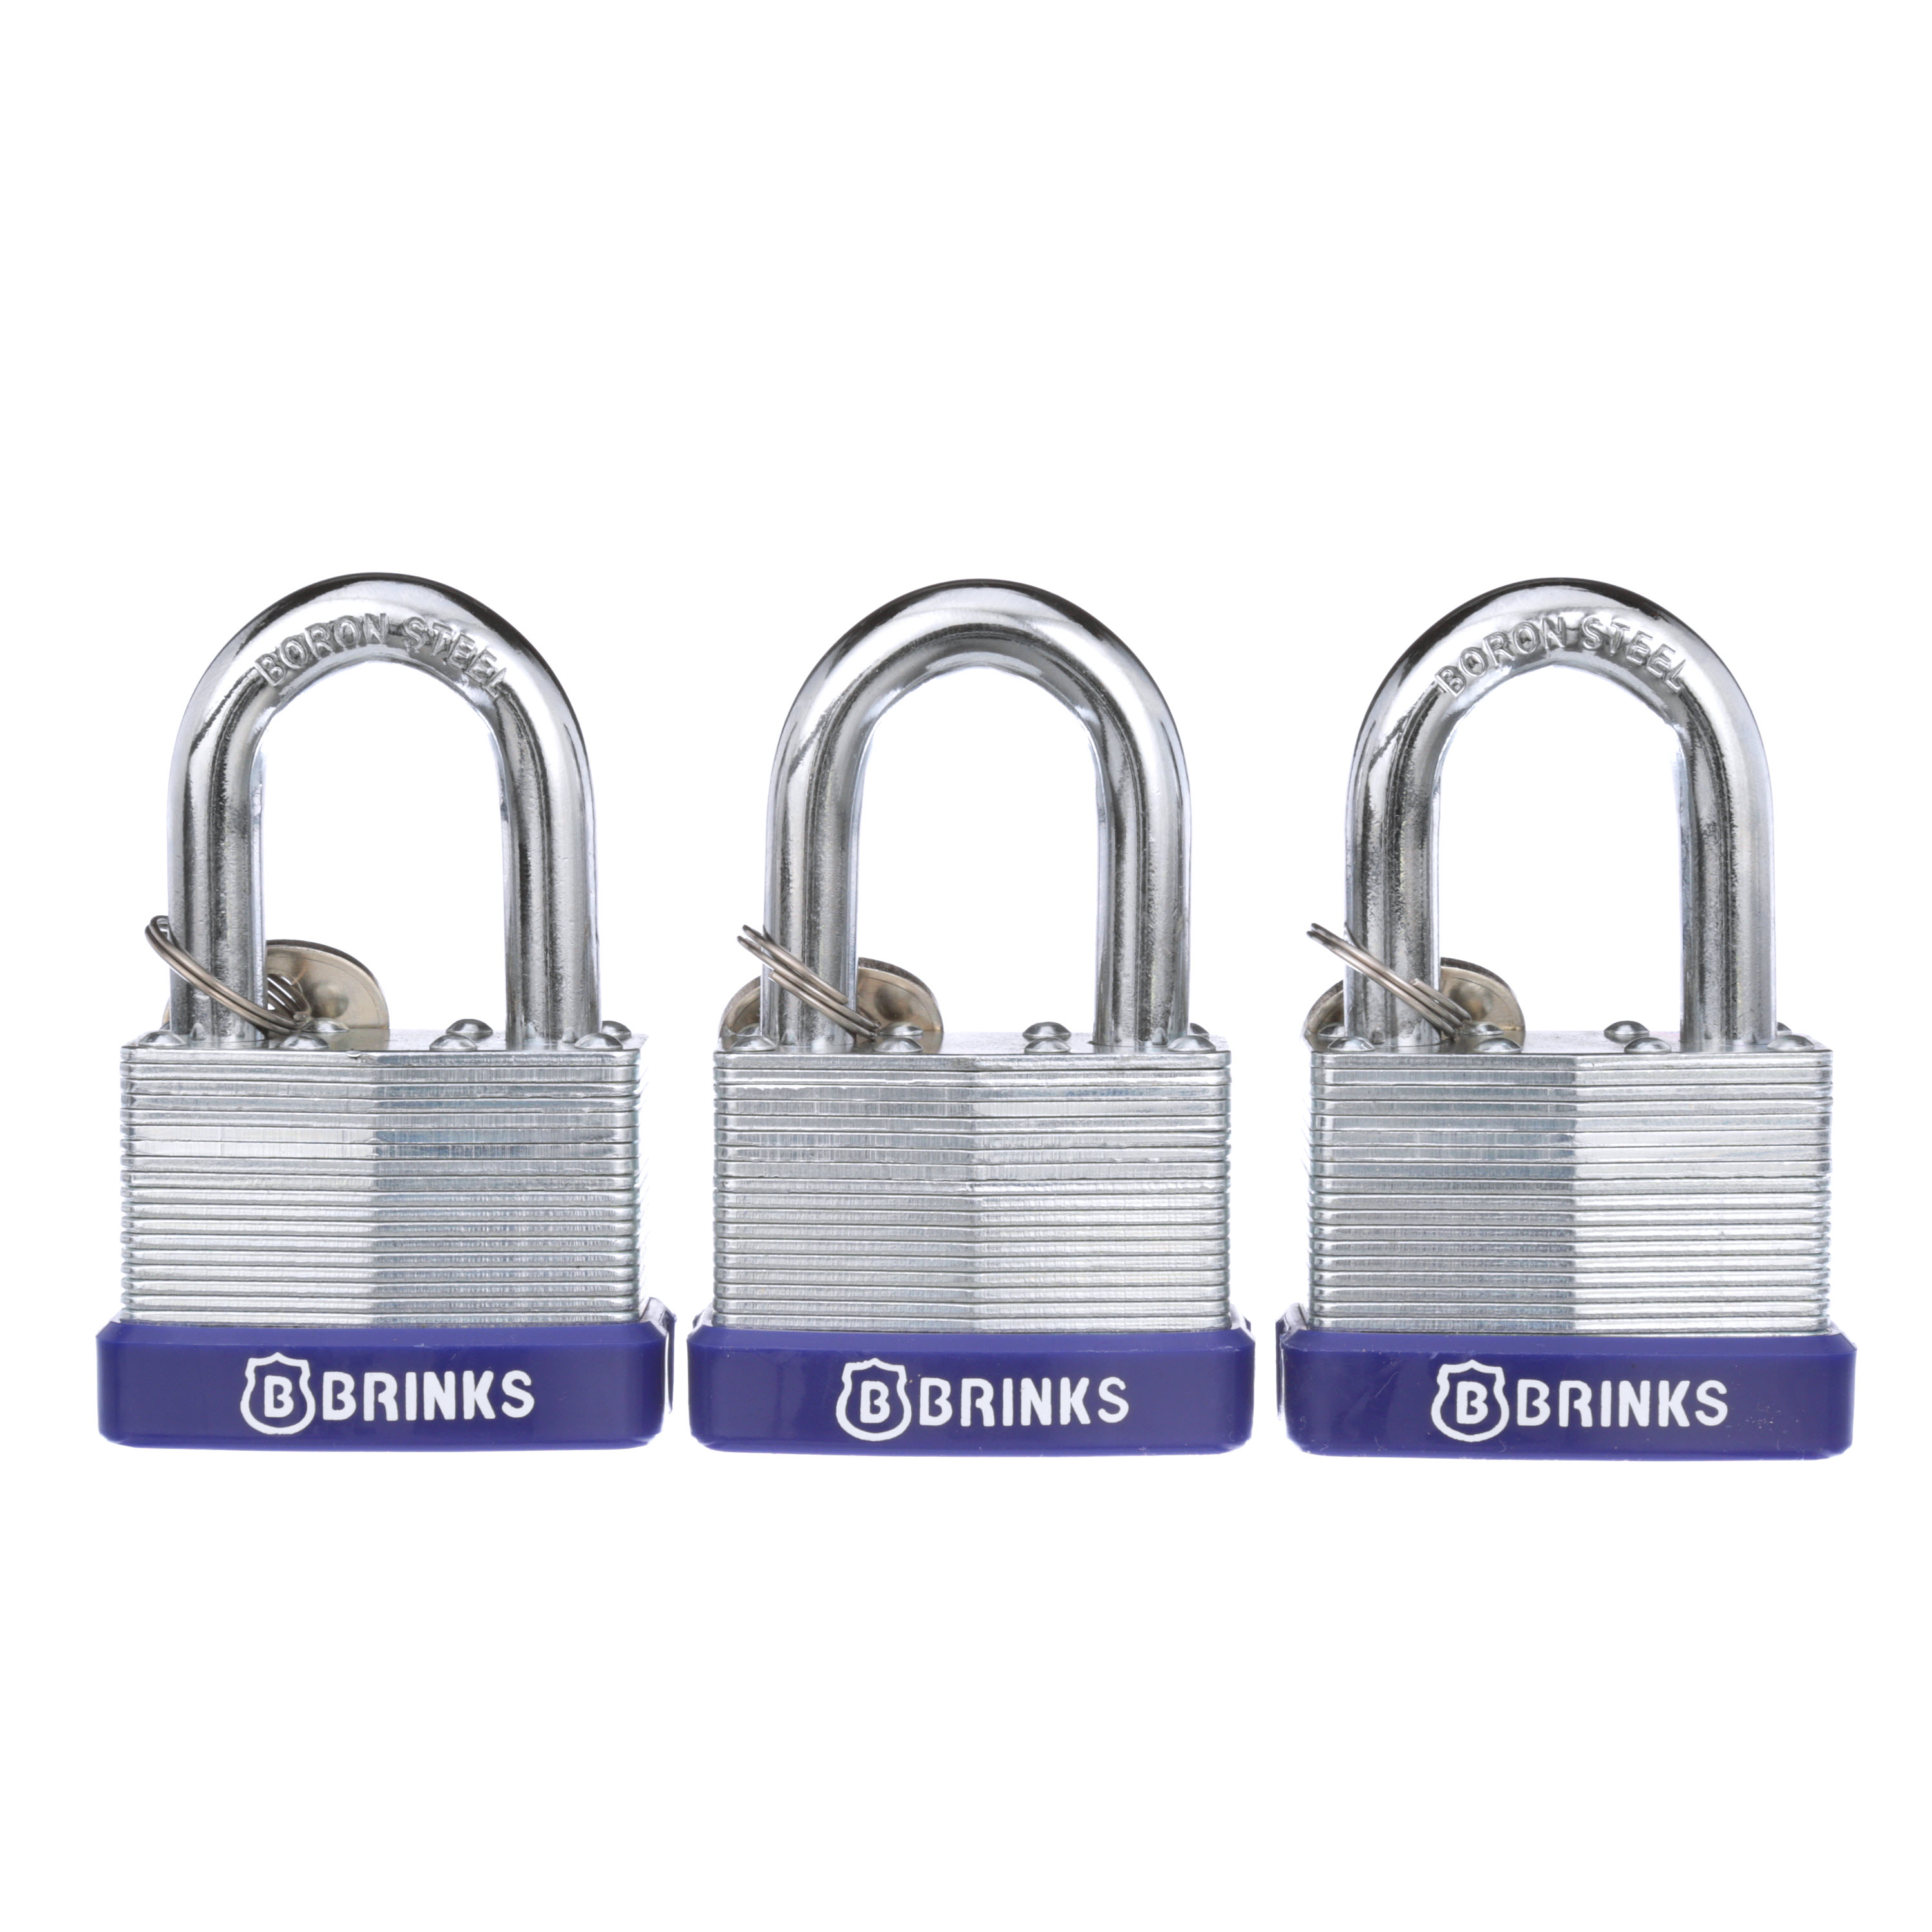 Brink's 50mm Laminated Steel Padlock, 3-Pack